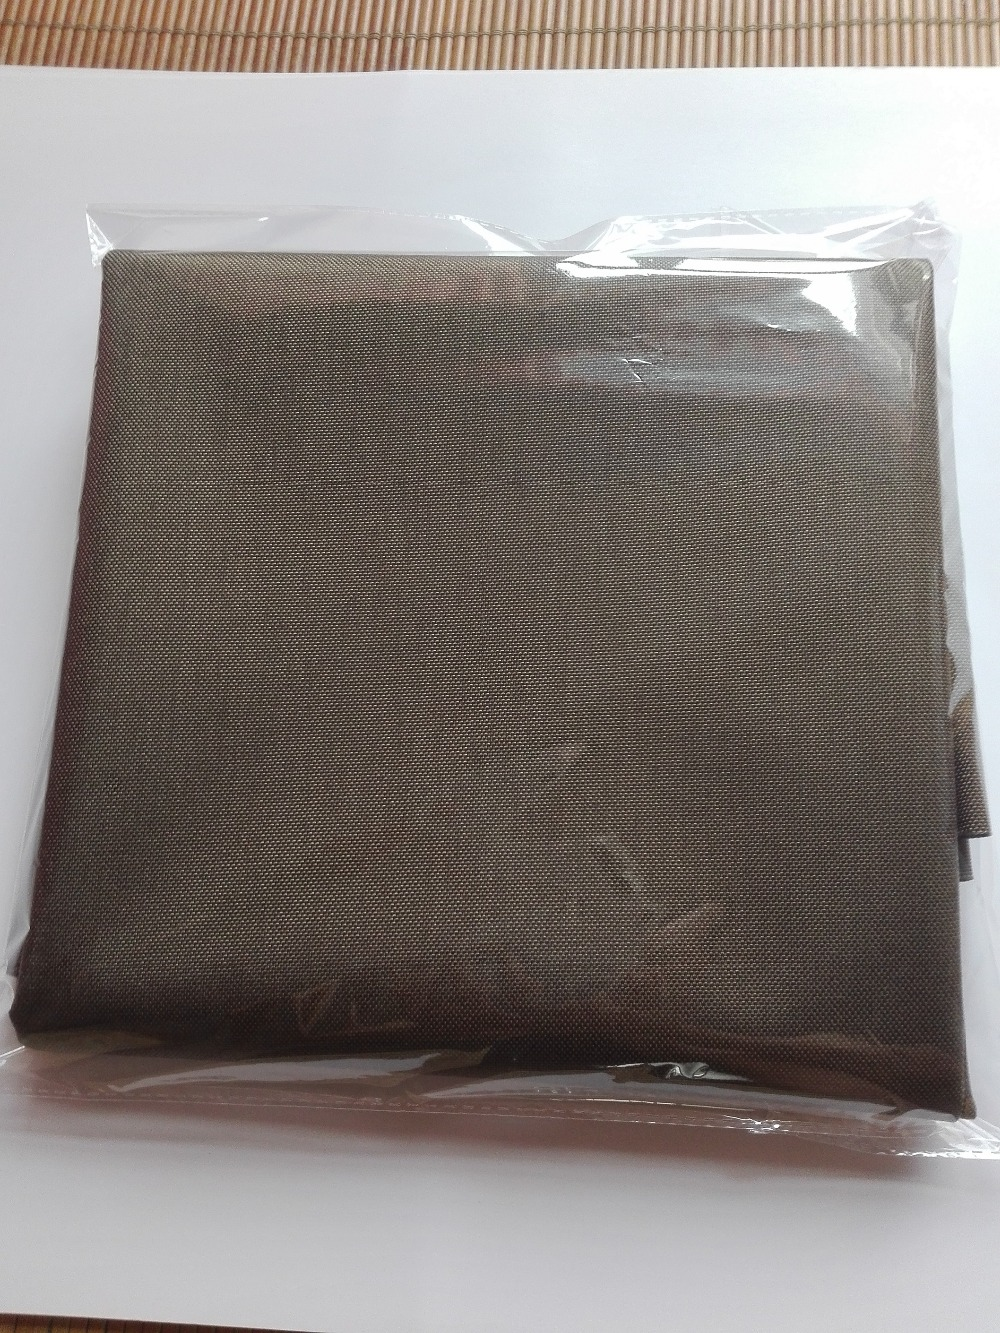 Super thick Army green 1000D cordura nylon fabric, Anti-tear wear-resistant Fabric,protective cloth.